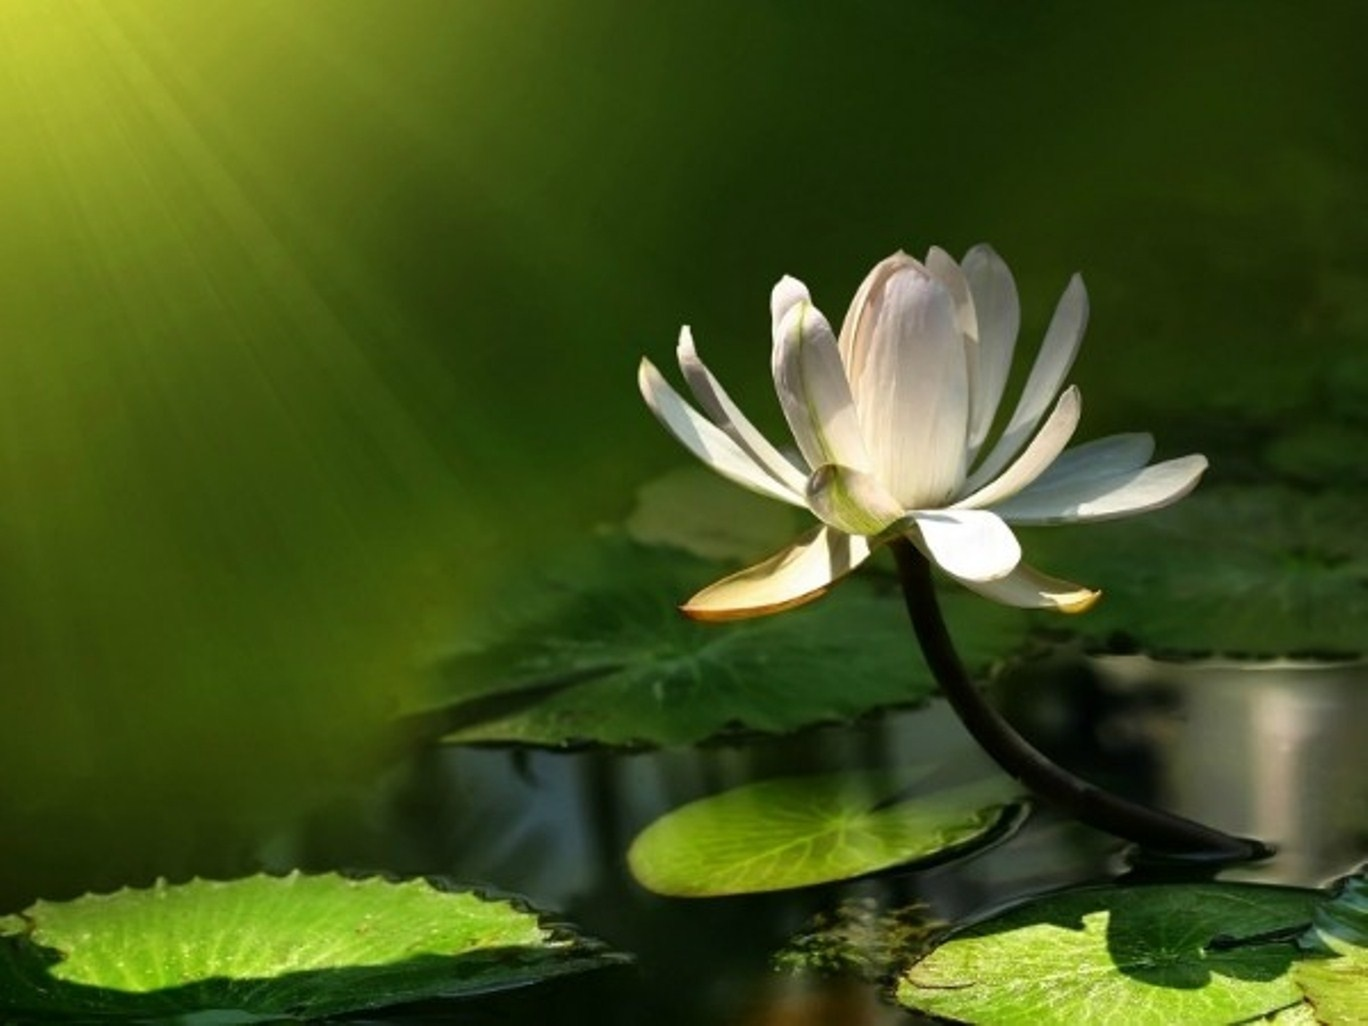 Hd Lotus Flower Wallpaper Free Download